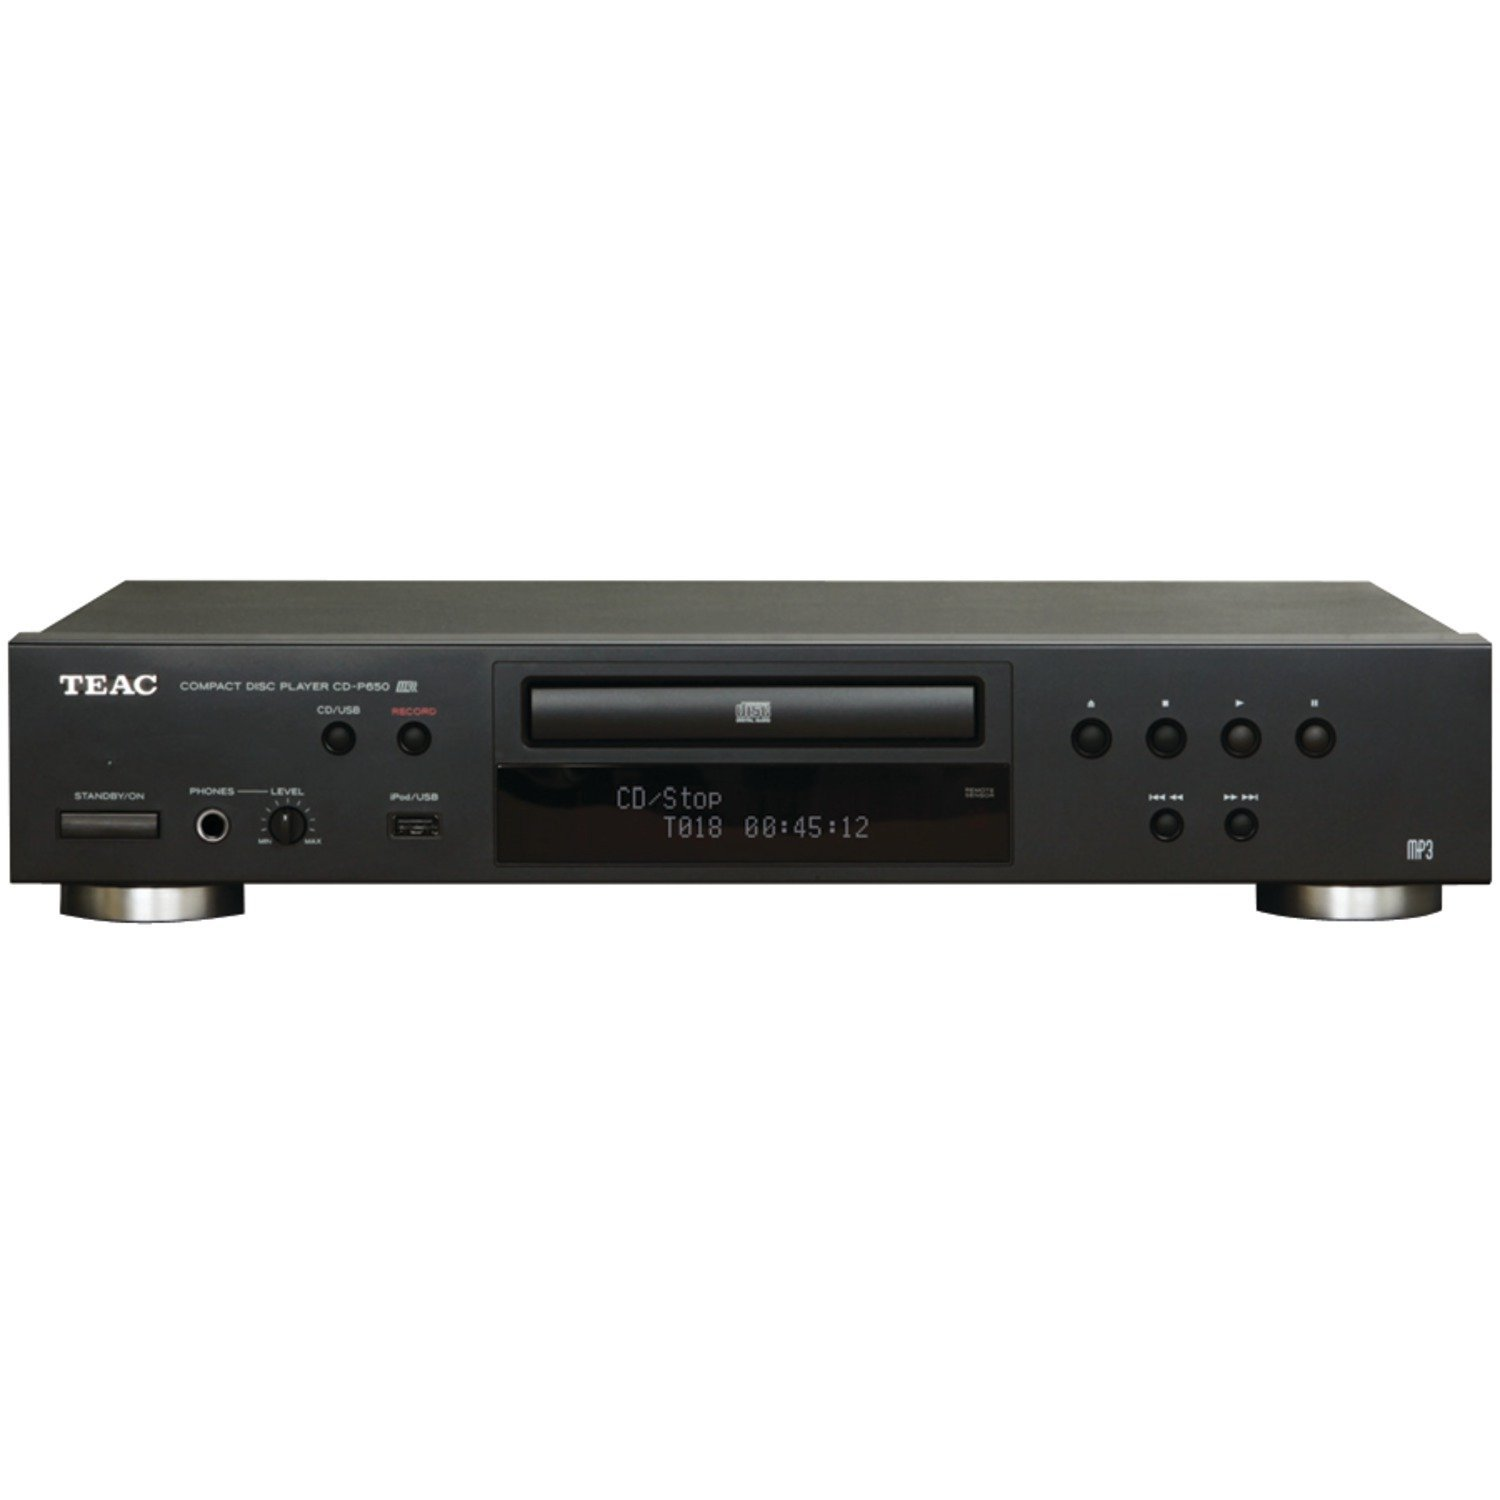 TEAC CD-P650-B Compact Disc Player with USB and iPod Digital Interface (Black) (Renewed) by Teac